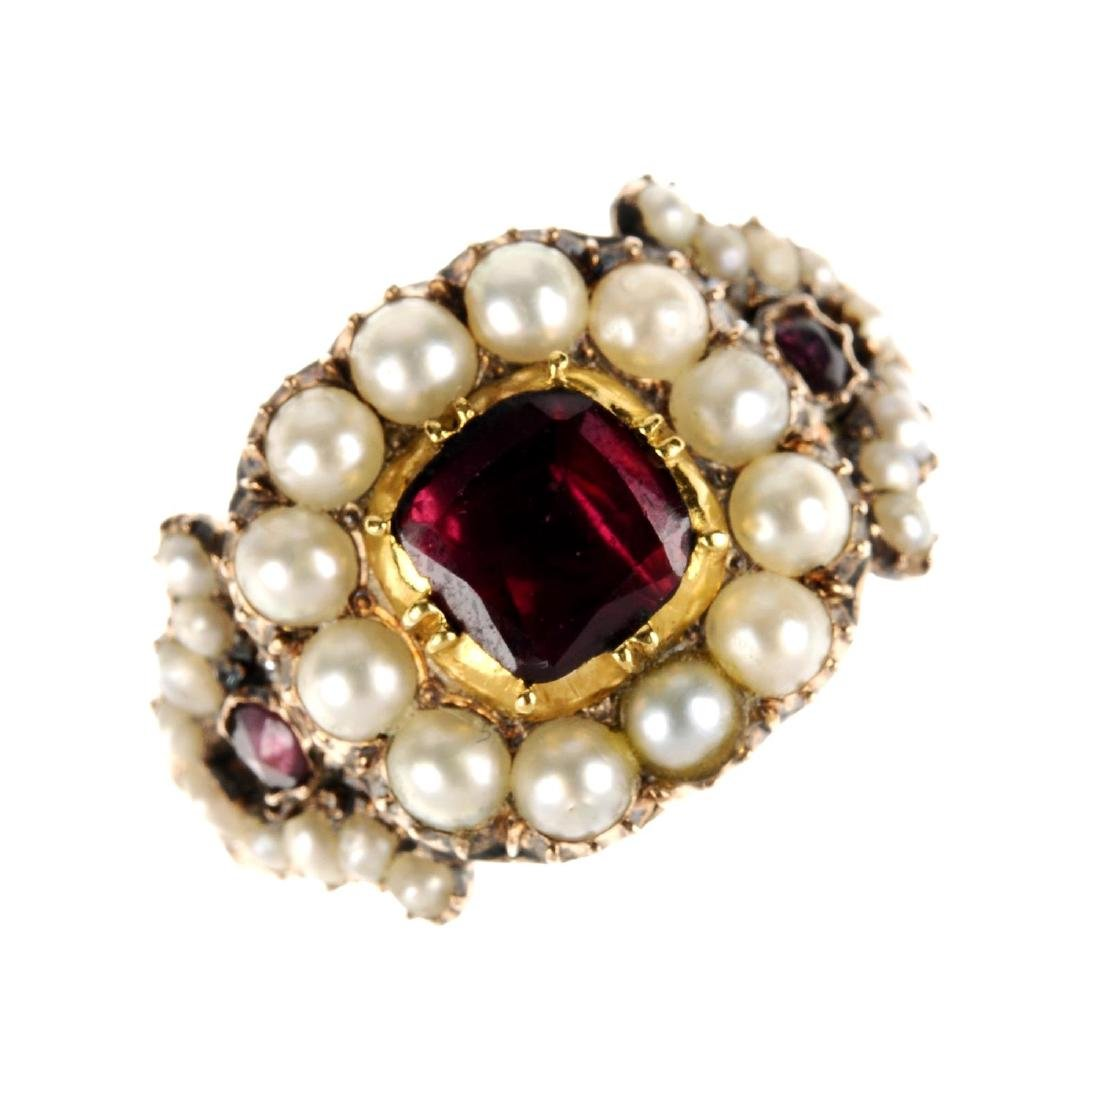 An early 19th century gold garnet and split pearl ring.